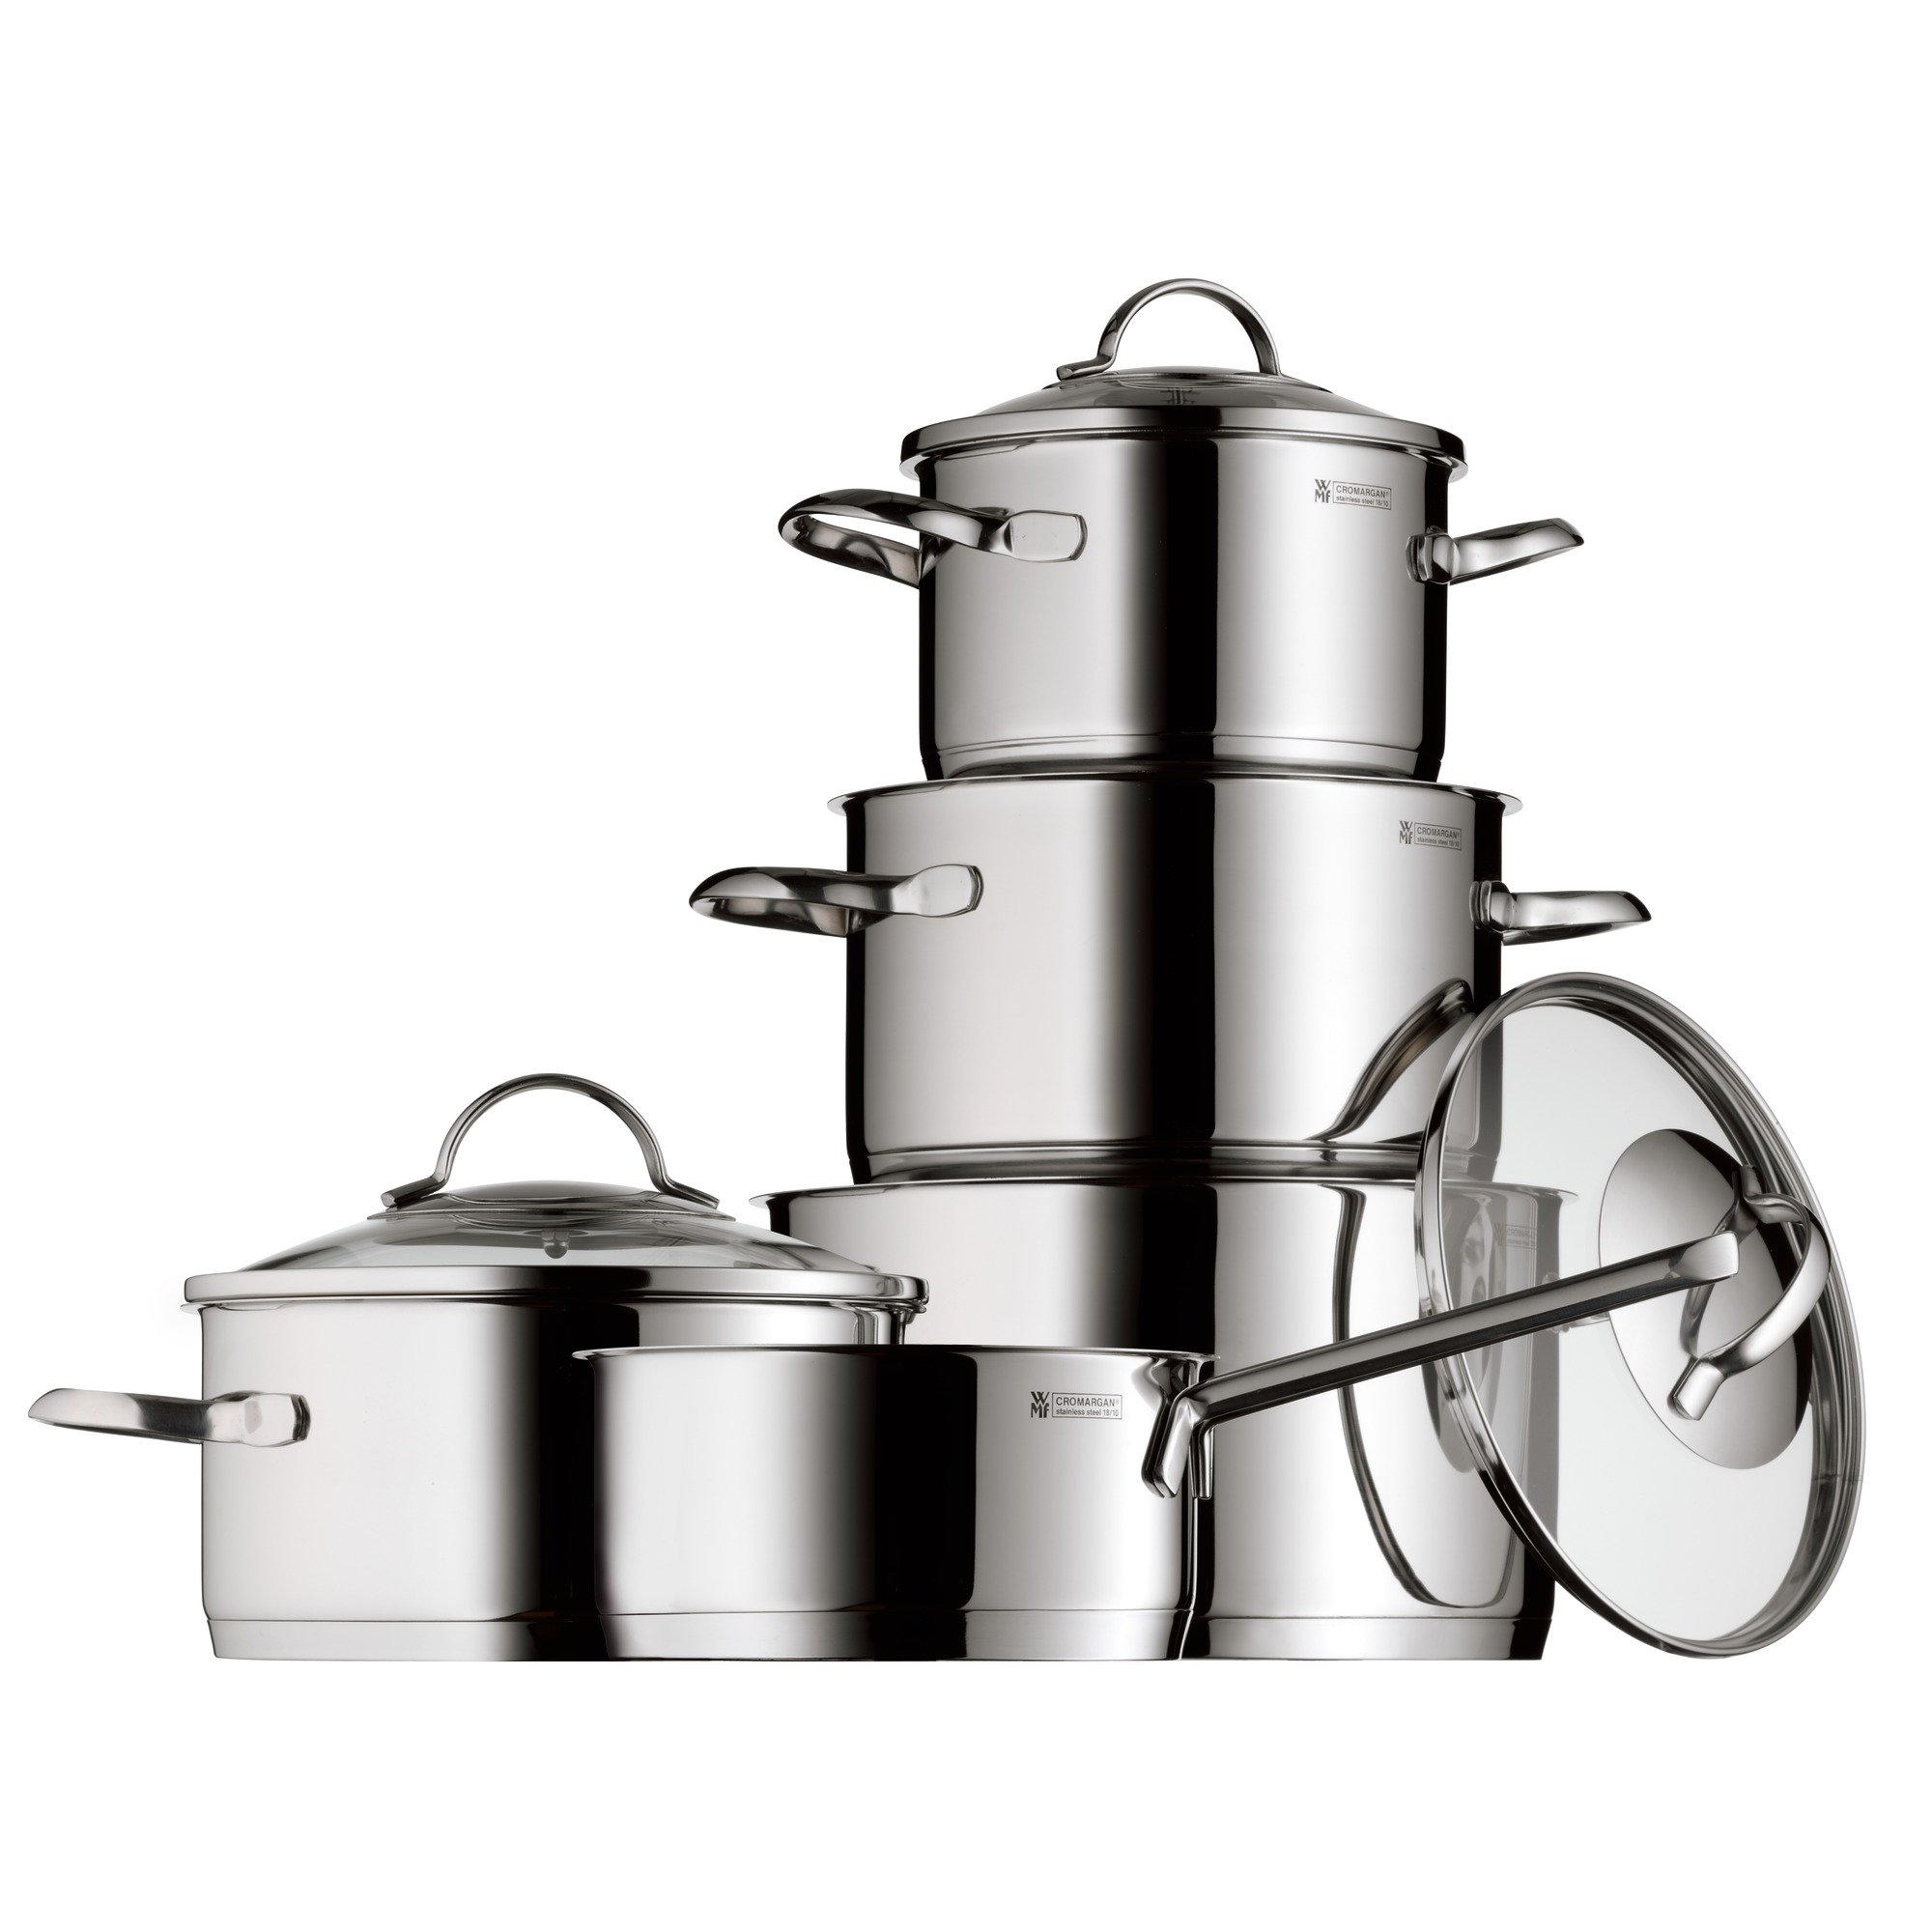 WMF Provence Plus 0721056380 Set of 5 Pots by WMF